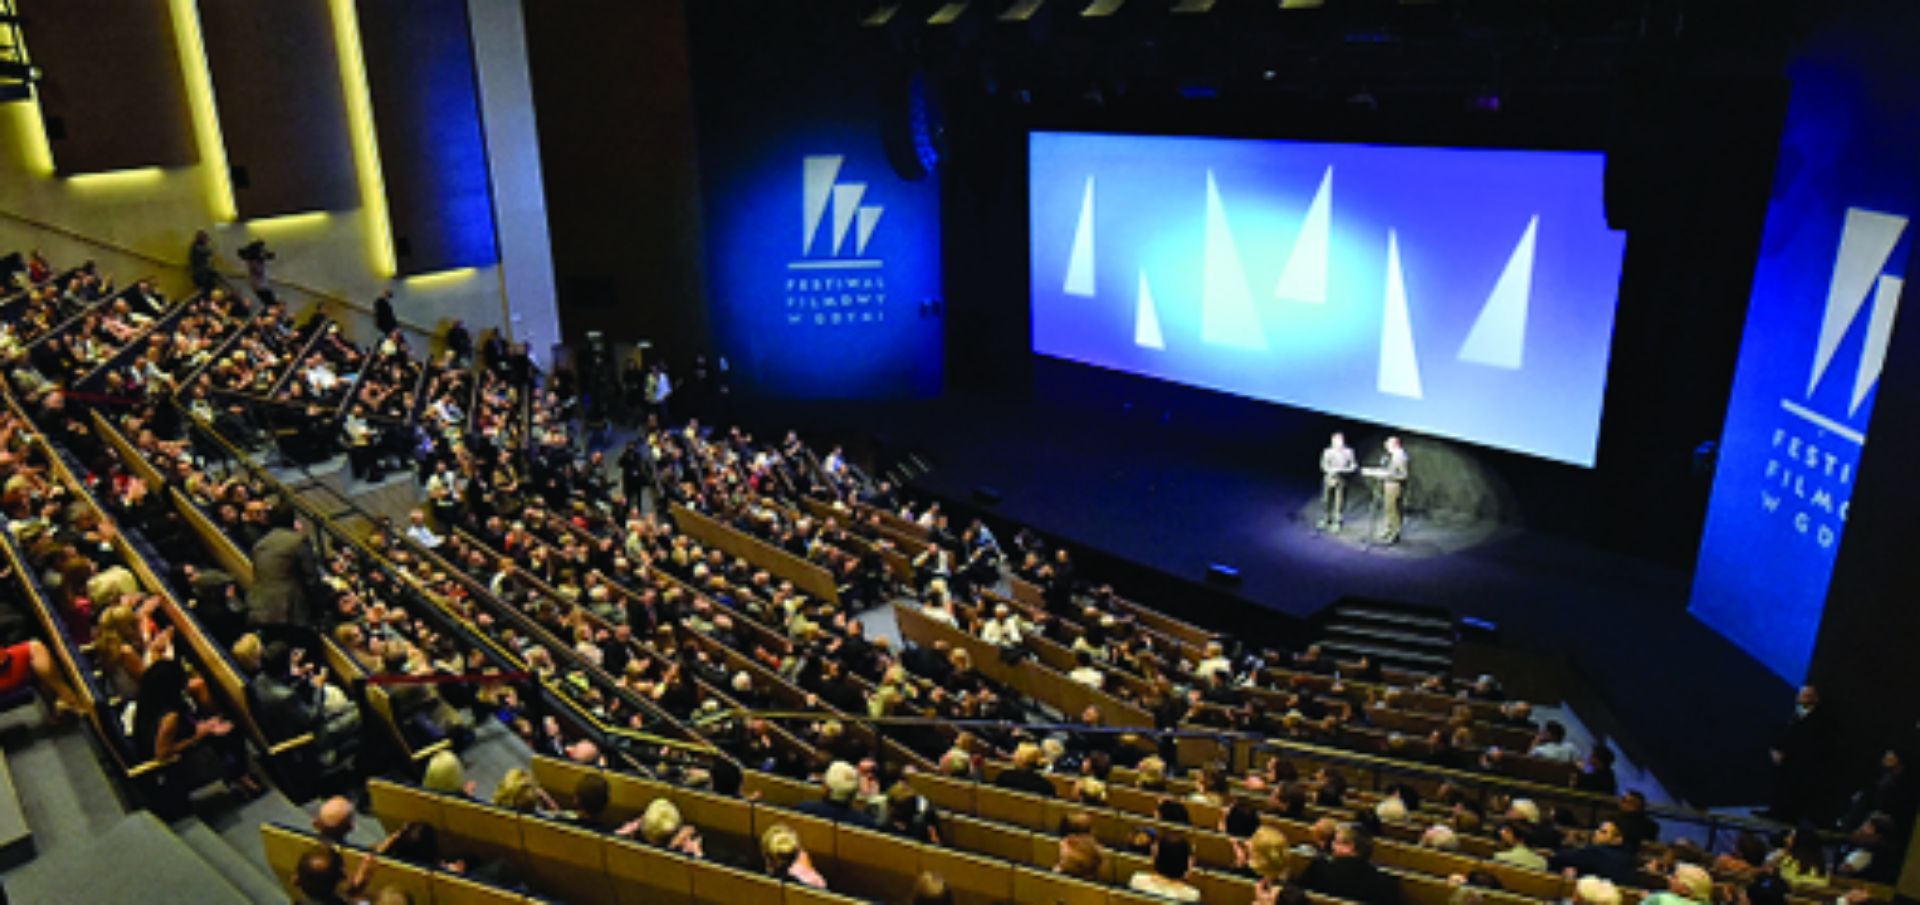 The Selection Board of the 40th Gdynia Film Festival!